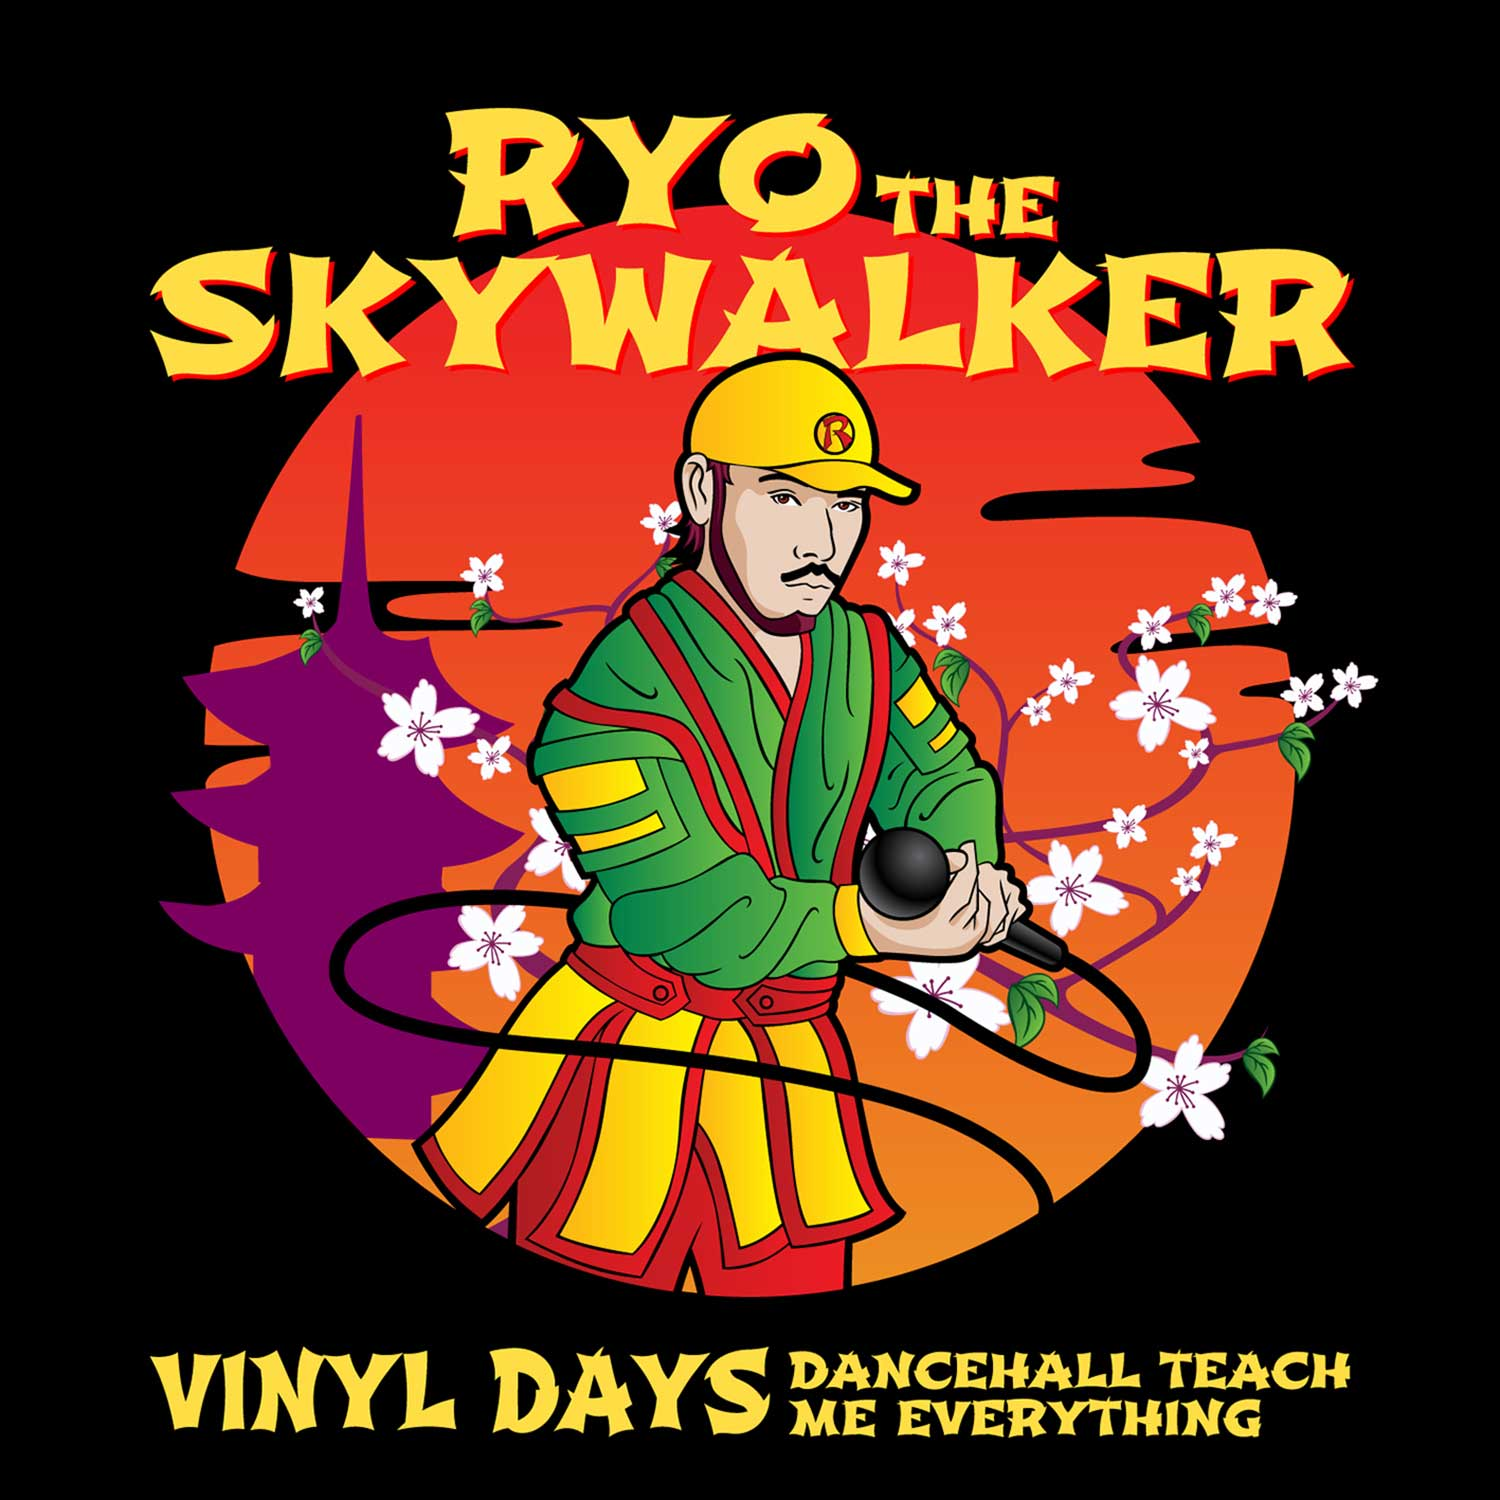 Vinyl Days (Dancehall Teach Mi Everything) – Ryo The Skywalker